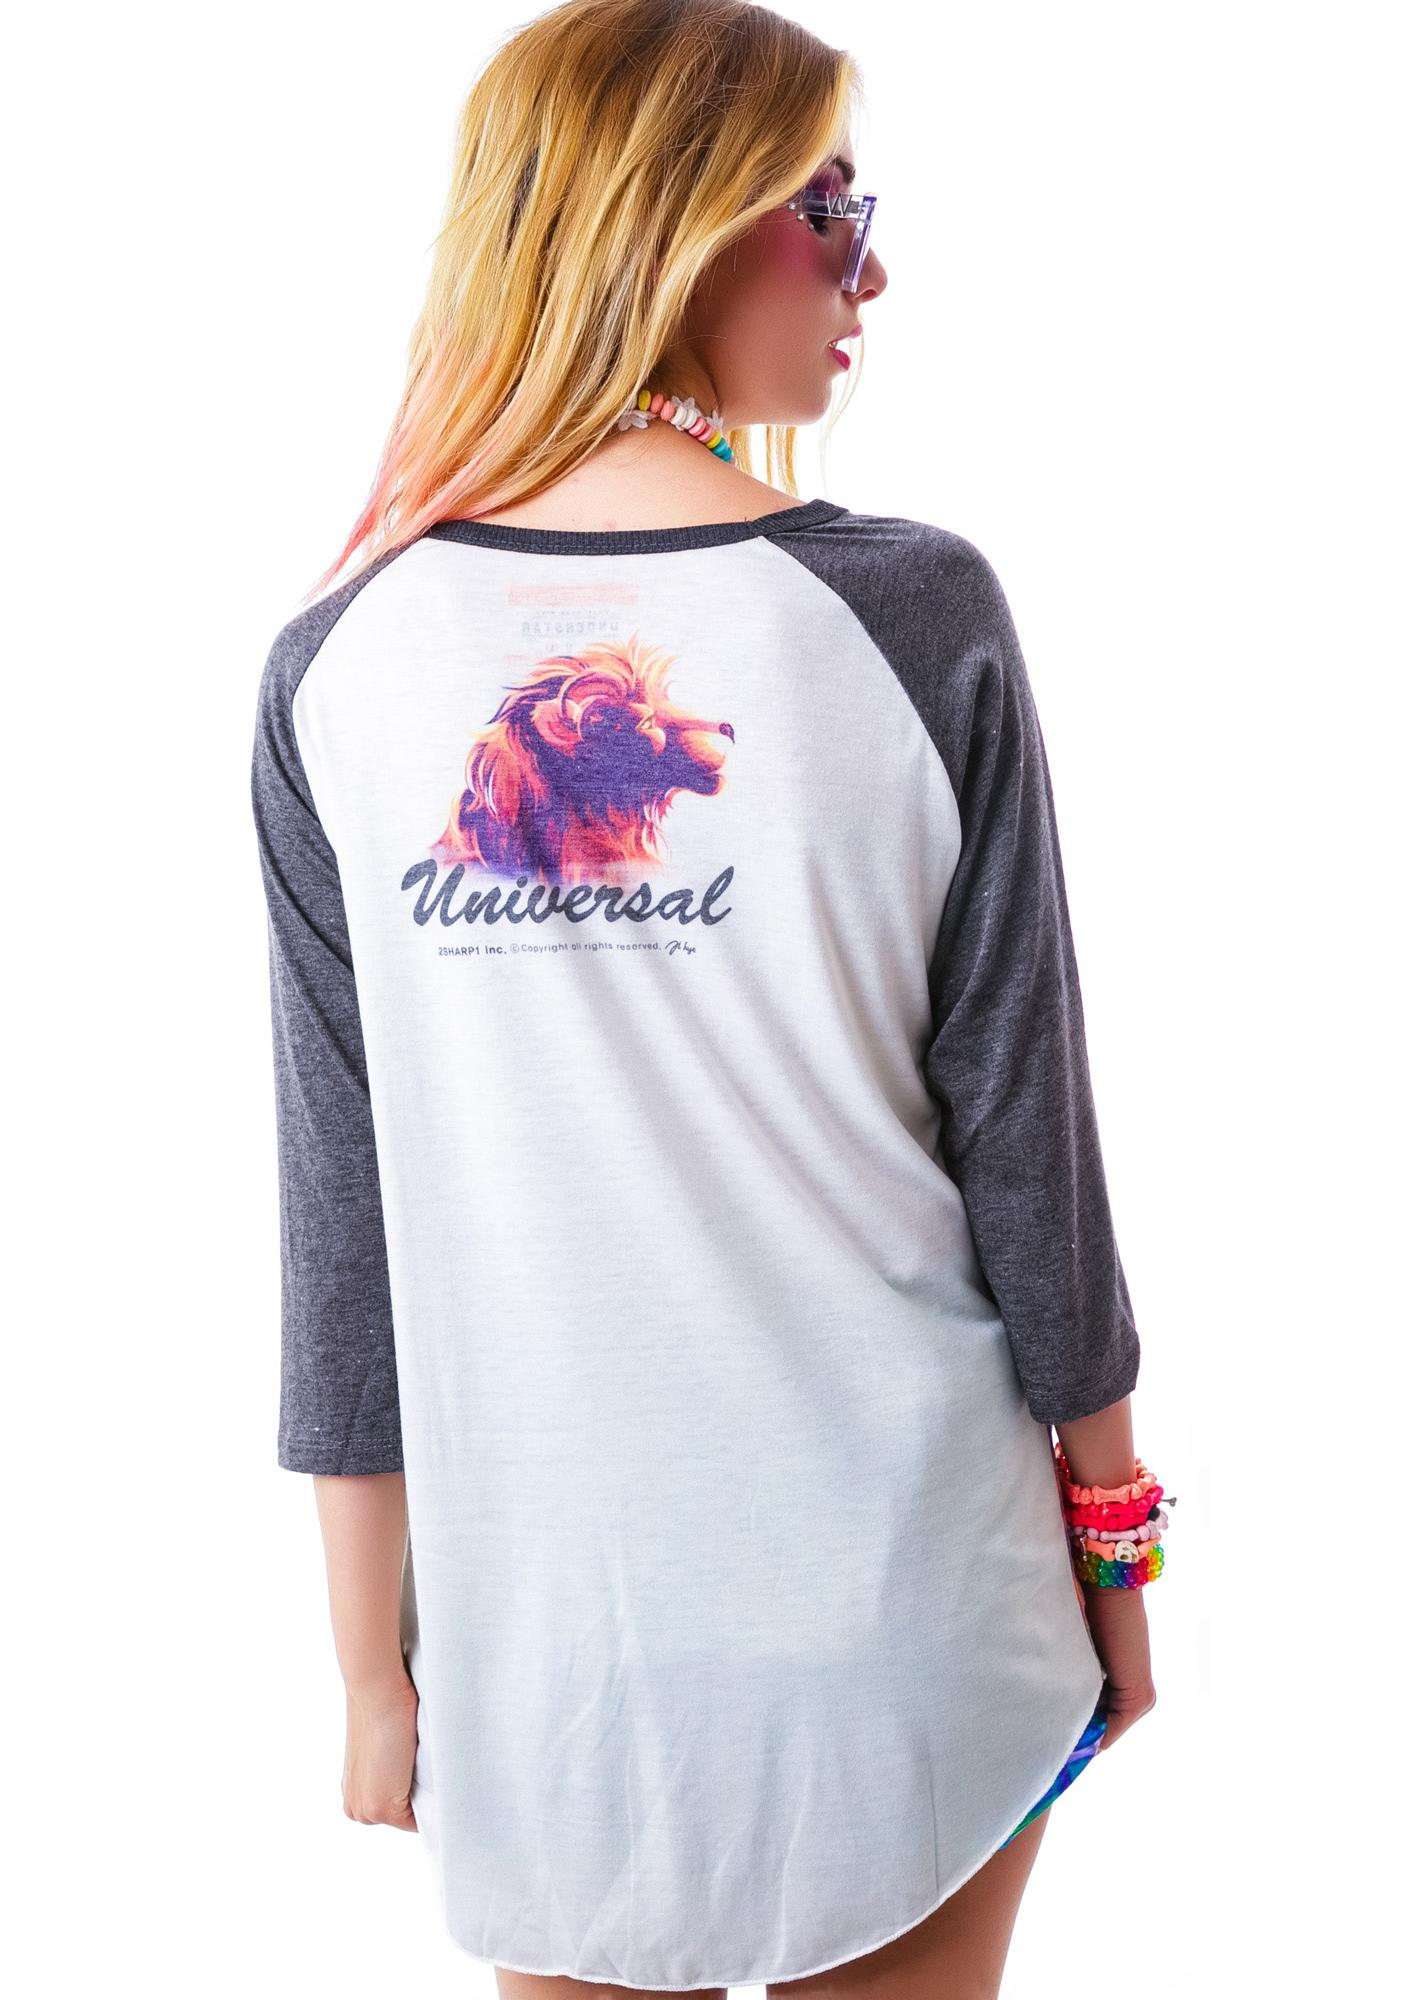 Chronicles of Narnia Raglan Tee